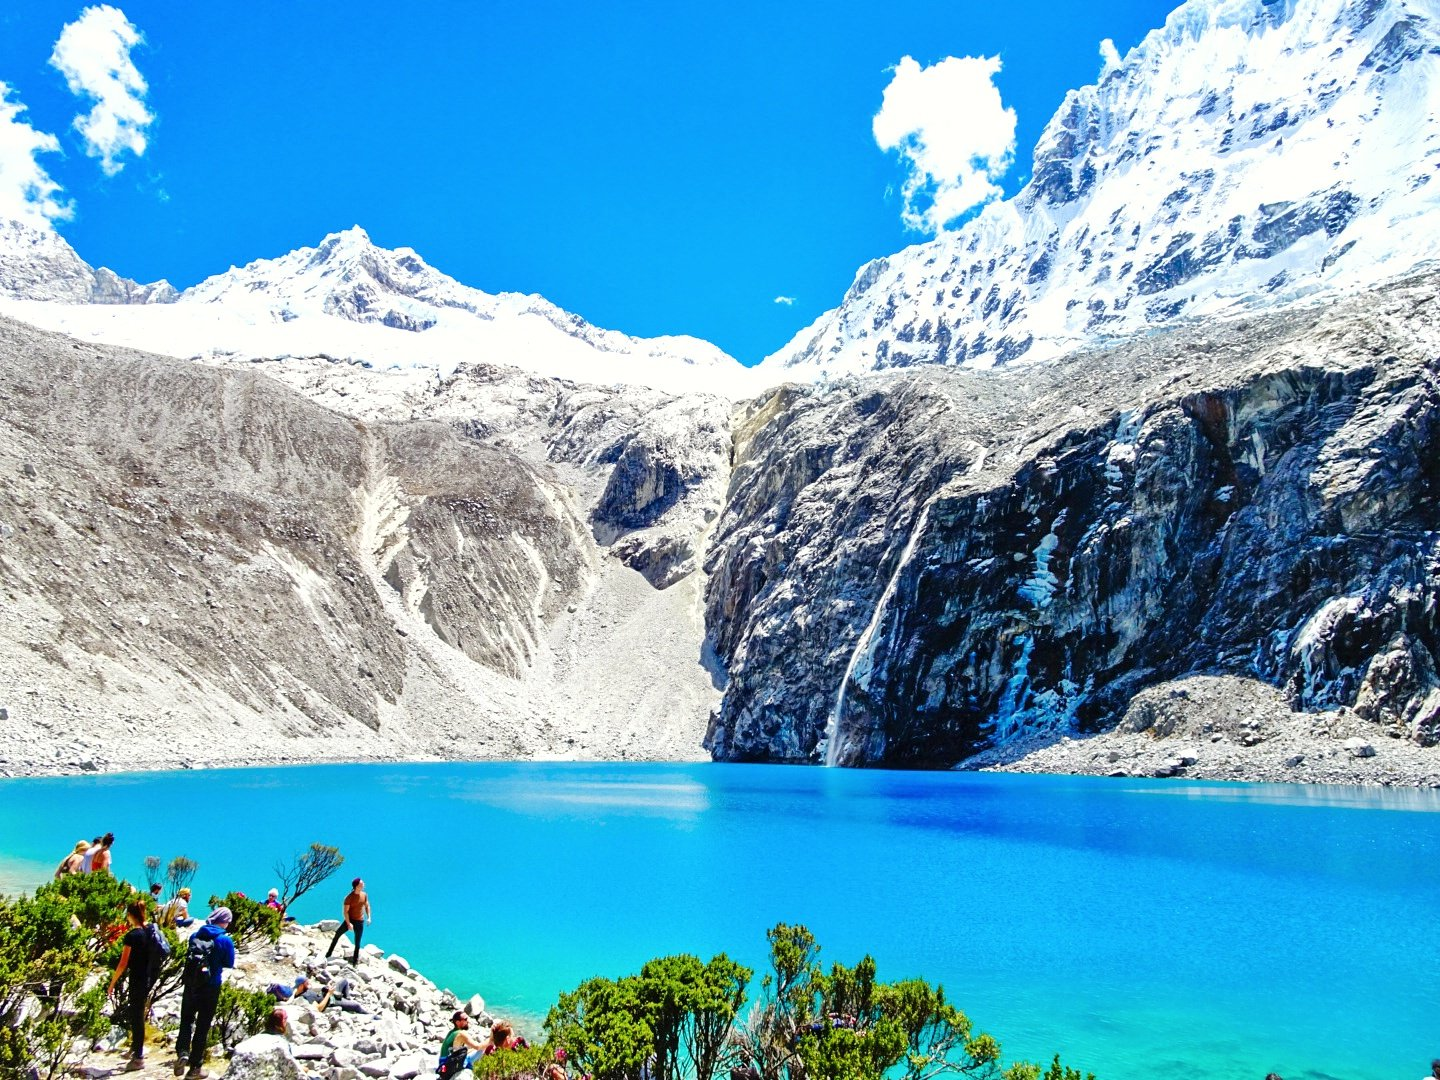 "<img src=""images/"" width=""800"" height=""600"" alt=""laguna 69 - wp image 2051049497 - Peru: Our Guide to Huaraz and The Sexy Laguna 69"">"